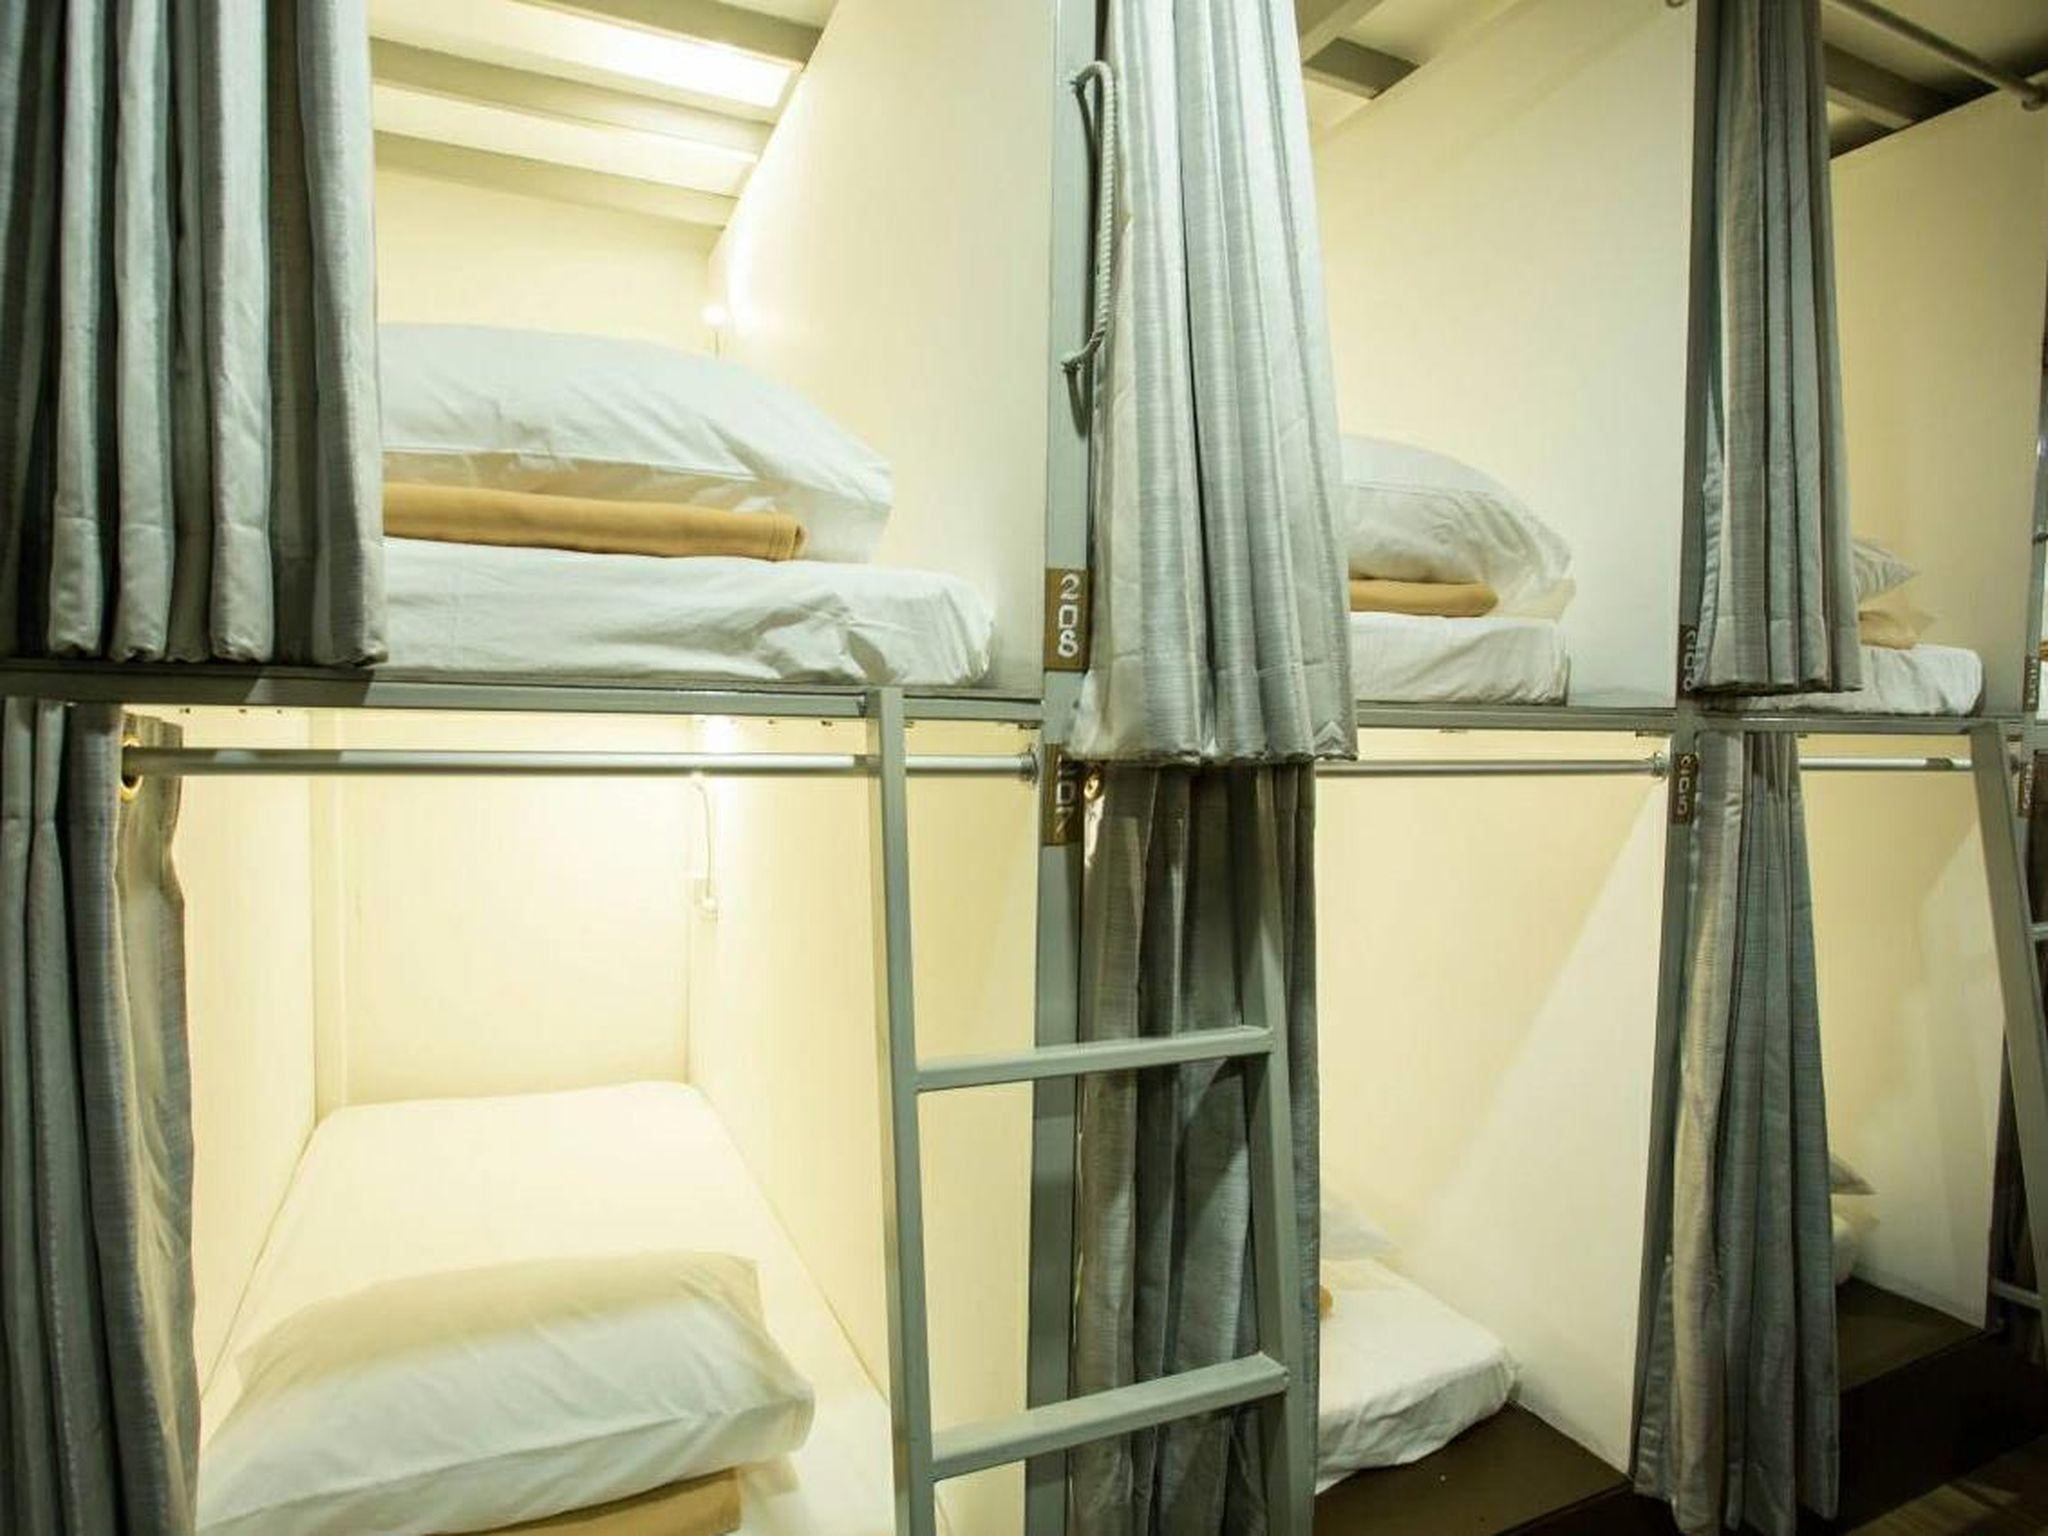 Female Dormitory Air Conditioning with Shared Bathroom